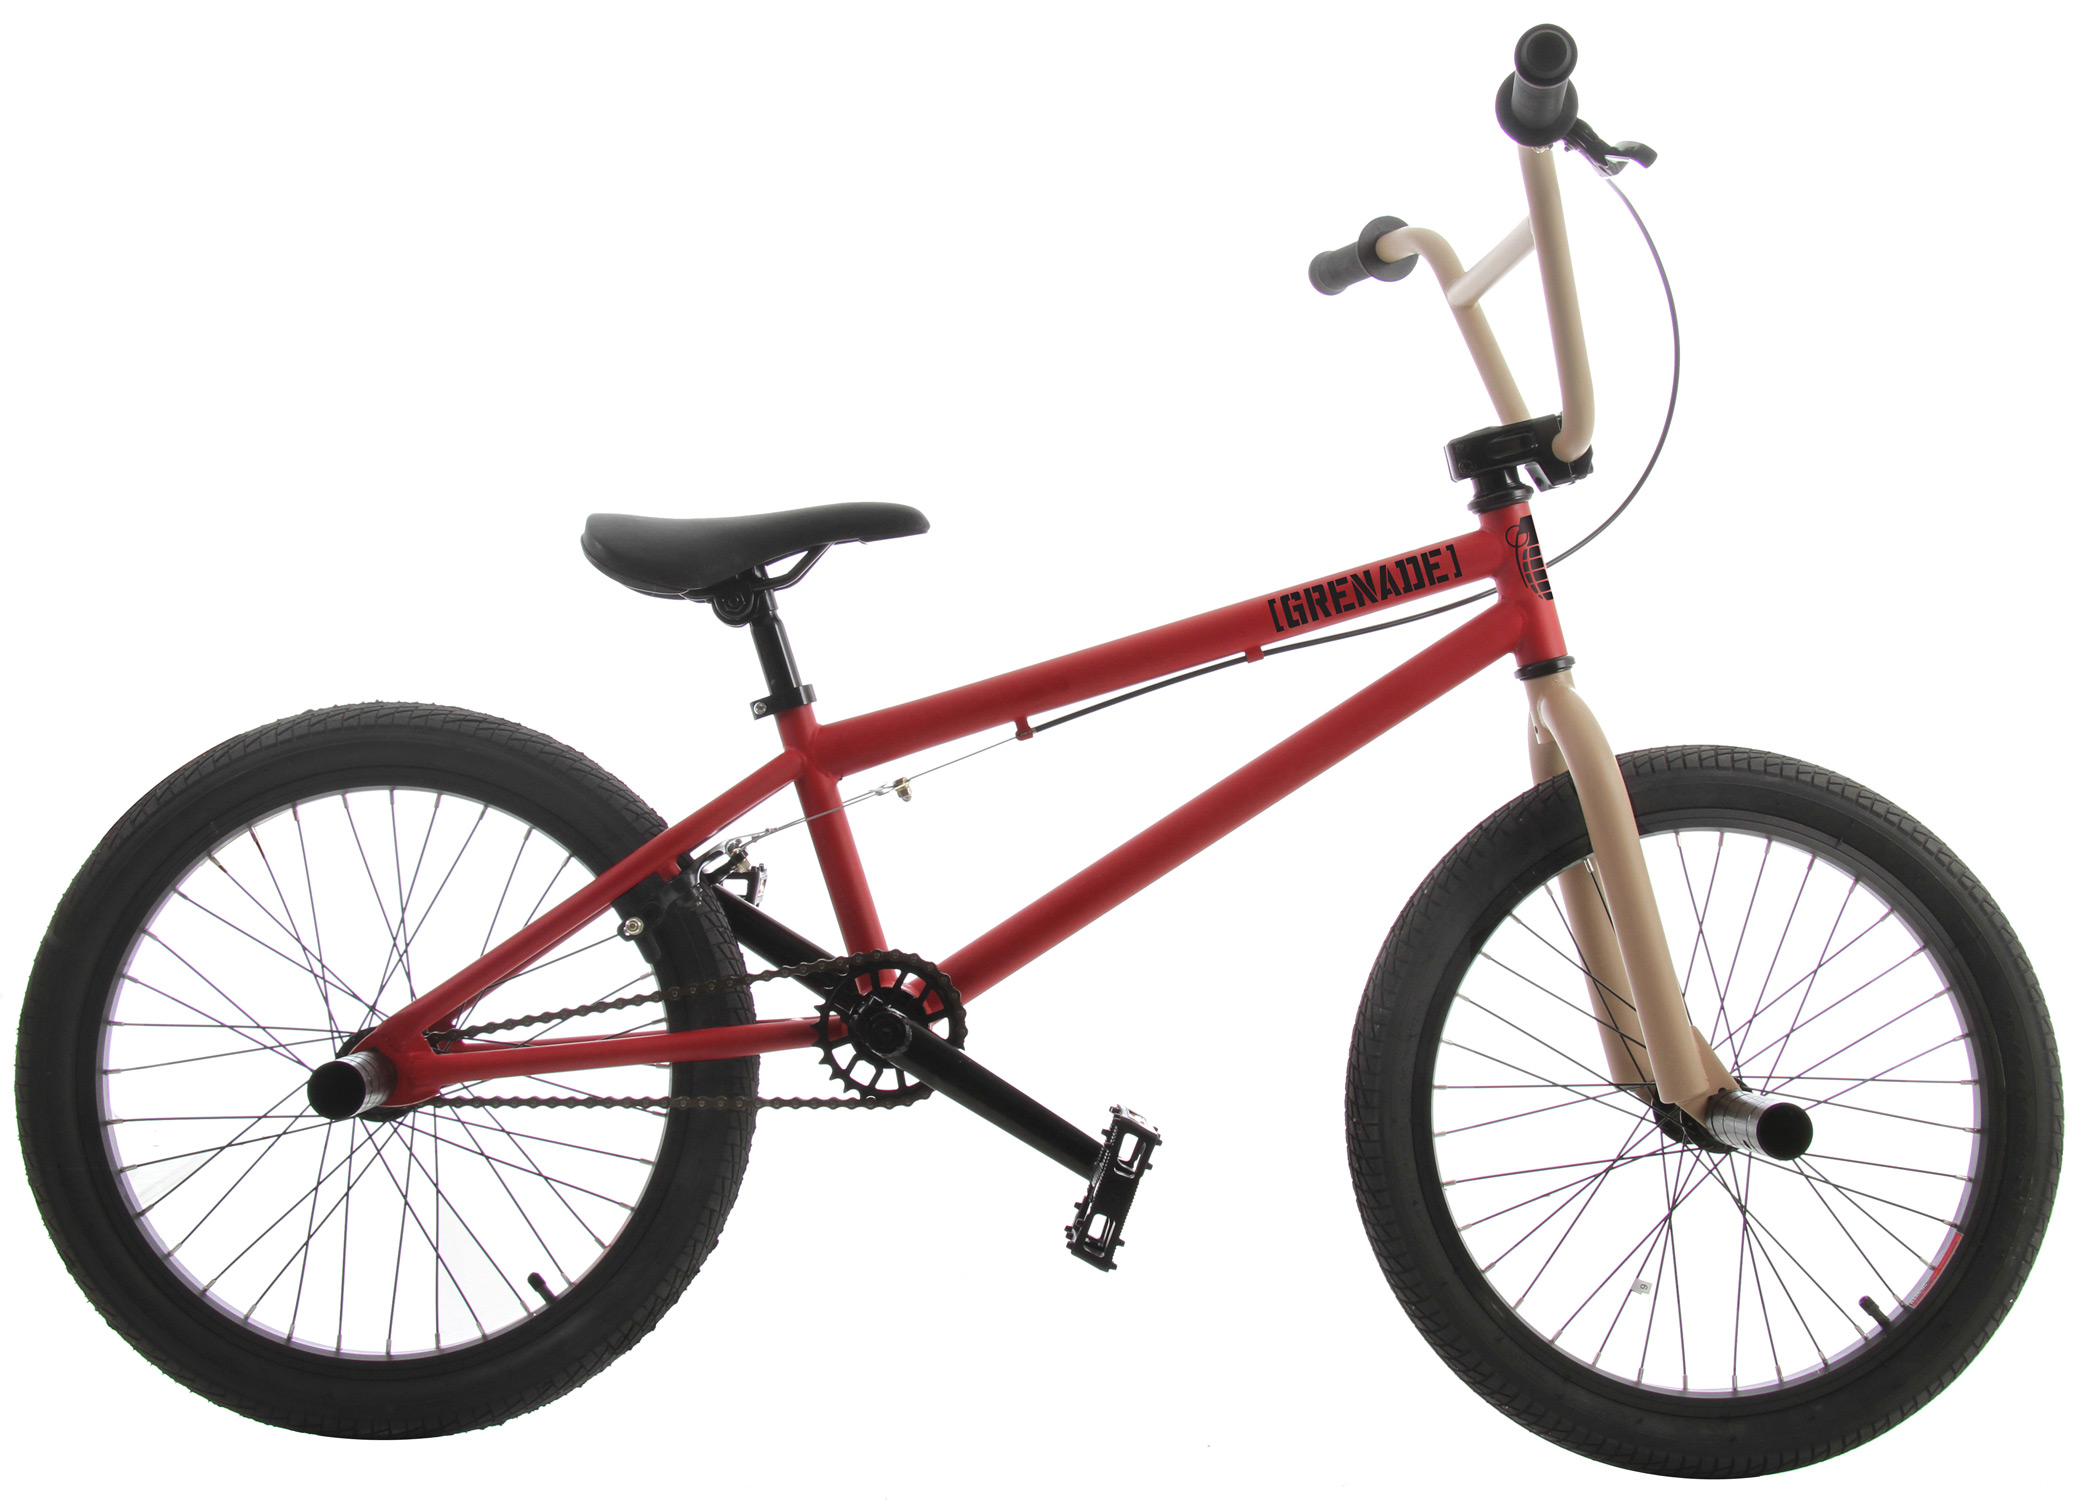 "BMX The 2013 Grenade MX is the fourth in Grenade's lineup of ""entry level"" street/ trail BMX bikes, but as you can see, the MX is not your standard entry level bike with its Cromoly Main Triangle and 25/9 Micro Drive System and its features do not stop there. The MX features Framed Grips, Framed Fuse Alloy Stem, Framed Pipe Bomb 175mm Tubular Cromoly Cranks with Cromoly Spindle, Framed 25 Tooth Alloy Sprocket, Framed Platform Pedals, Framed Cannon 14mm Alloy Hubset with a 9 Tooth Driver in the rear, and Framed Flak Jacket Double Wall Alloy Rims. The Grenade MX Bike is as at home on the street as it is on the trails, with its agile but stable geometry and its quality packed components.FRAME: CroMo Main Triangle with 20.4"" Top Tube FORKS: HiTen Forks with CroMo Steer Tube BARS: HiTen 8"" Rise Bars GRIPS: Framed Grips STEM: Framed Fuse Alloy Stem HEADSET: 1 1/8"" Threadless Headset BRAKE LEVER: Framed Alloy Lever BRAKE: Framed Alloy U-Brakes CRANKS: Framed Pipe Bomb 175mm Tubular CroMo Cranks with CroMo Spindle SPROCKET: Framed 25 Tooth Alloy Sprocket CHAIN: KMC Z410 PEDALS: Framed Platform Pedals FRONT HUB: Framed Cannon 14mm 36 Hole Alloy Hub REAR HUB: Framed Cannon 14mm 36 Hole Alloy Hub with 9 Tooth Driver RIMS: Framed Flak Jacket Double Wall Alloy Rims TIRES: Framed 20"" X 2.125"" Tires SADDLE: Framed Saddle SEAT POST: Framed Seat Post CLAMP: Framed Alloy Clamp PEGS: Framed Steel Pegs (2 PCS  TOP TUBE: 20.4"" HEAD TUBE ANGLE: 74deg SEAT TUBE: 9.5"" SEAT TUBE ANGLE: 71deg CHAINSTAY: 14"" BB HEIGHT: 11.6"" APPROX WEIGHT: 26 lbs WHEELBASE: 36.25"" These Grenade BMX bikes come without decals applied. Each bike is shipped with a decal packet, containing a number of decals of different styles and colors. This allows the rider to customize the bike to their liking. - $229.95"